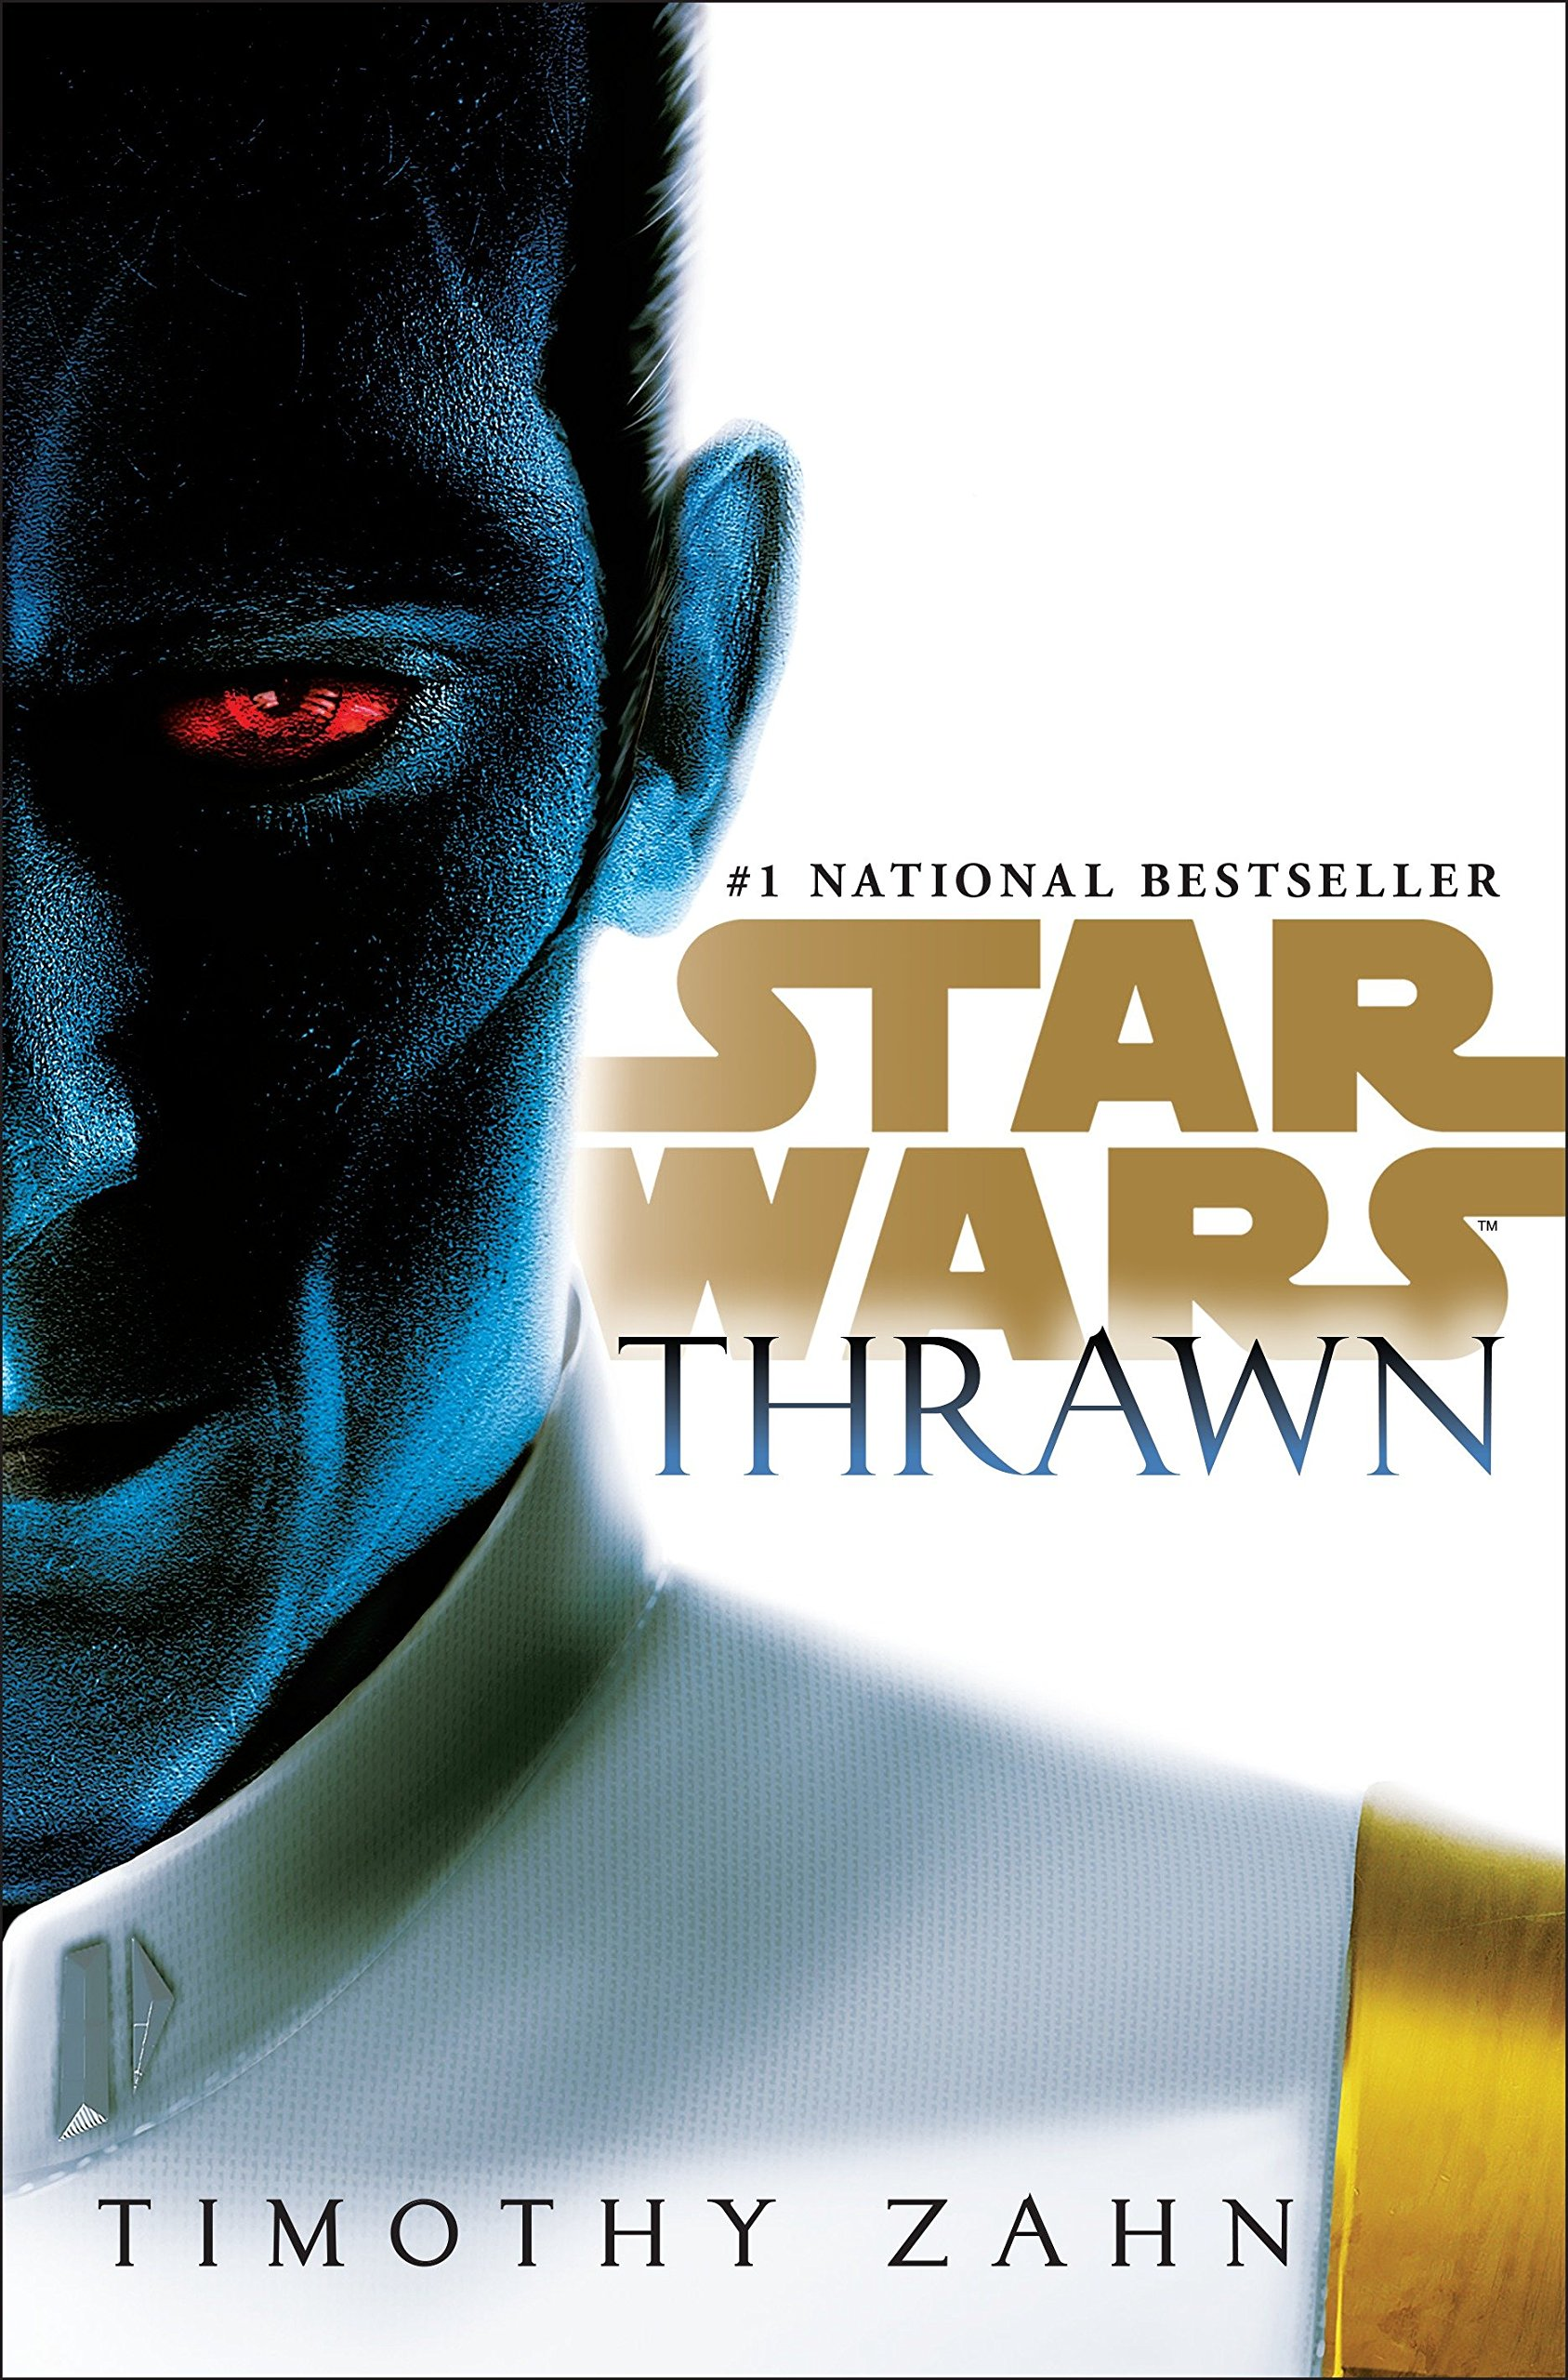 Image result for thrawn book cover